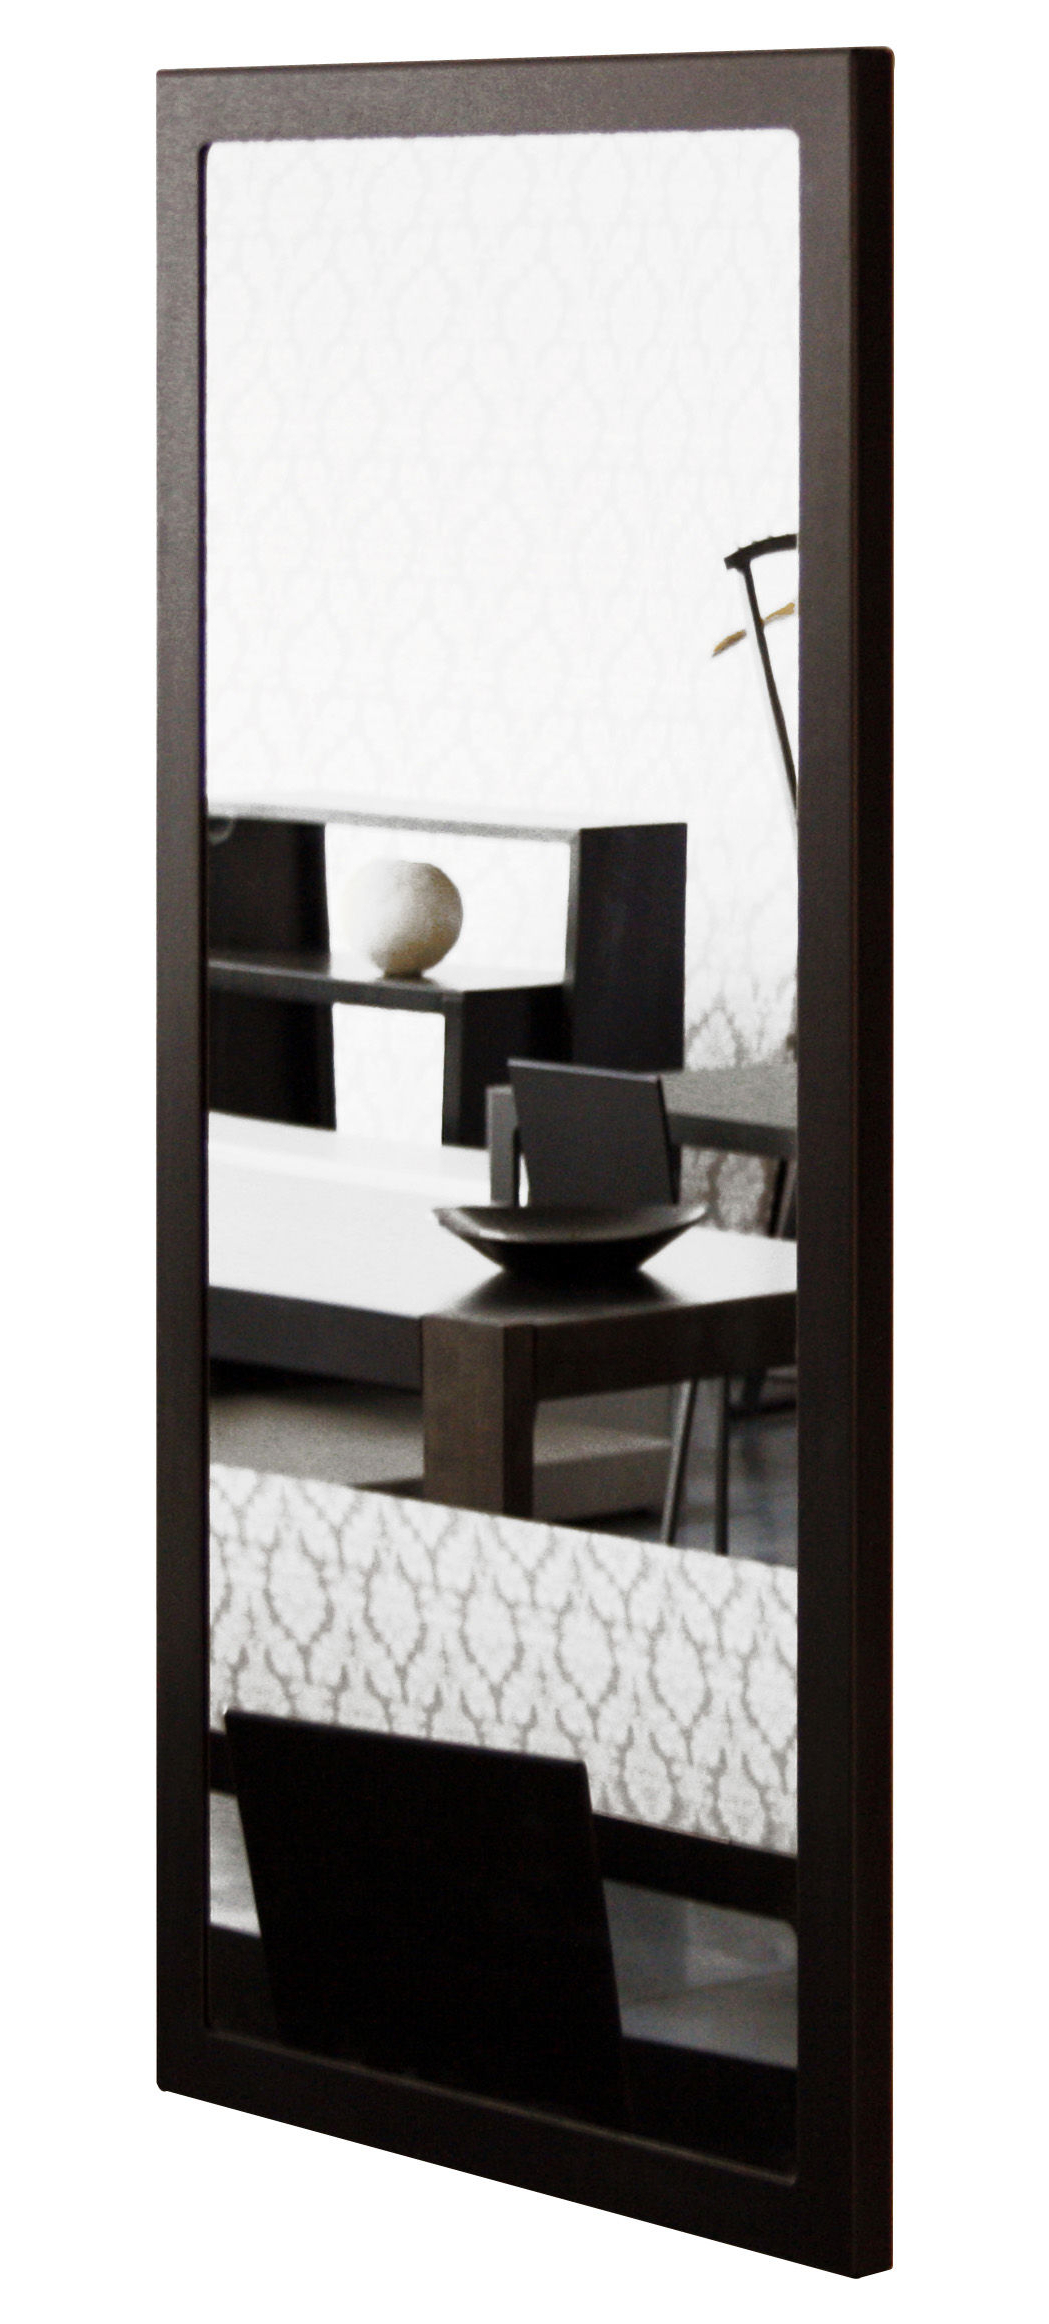 Little Frame Wall Mirror – 60 X 120 Cmzeus Inside Fashionable Black Framed Wall Mirrors (View 20 of 20)